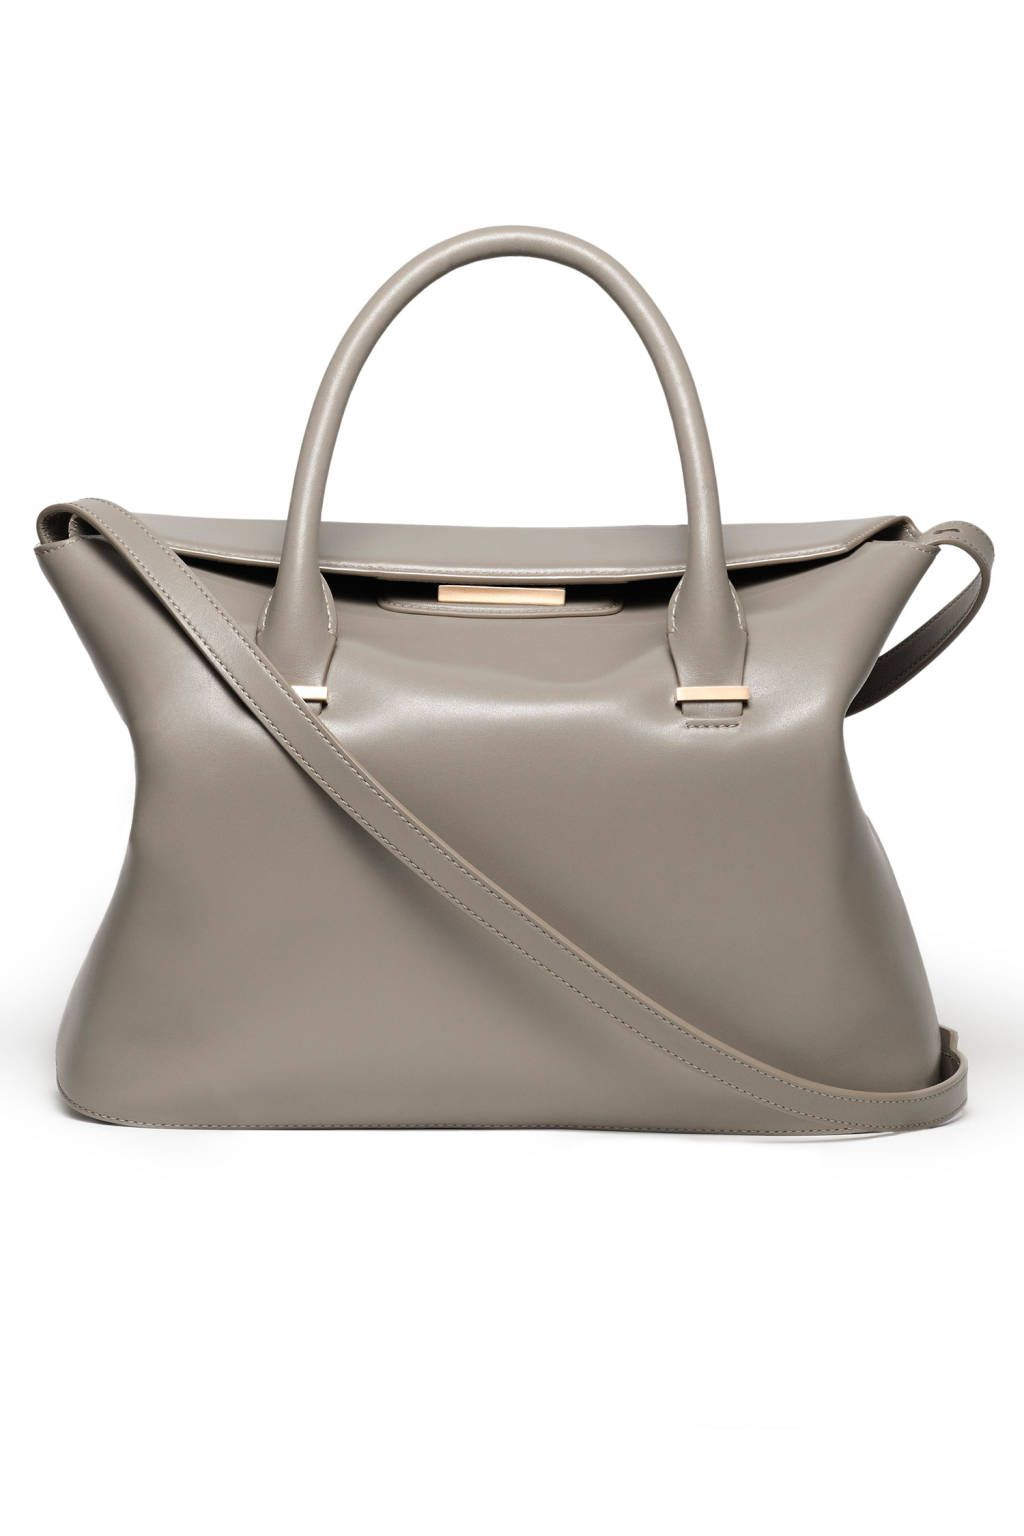 10 designer bags every woman should own | designers, designer bags